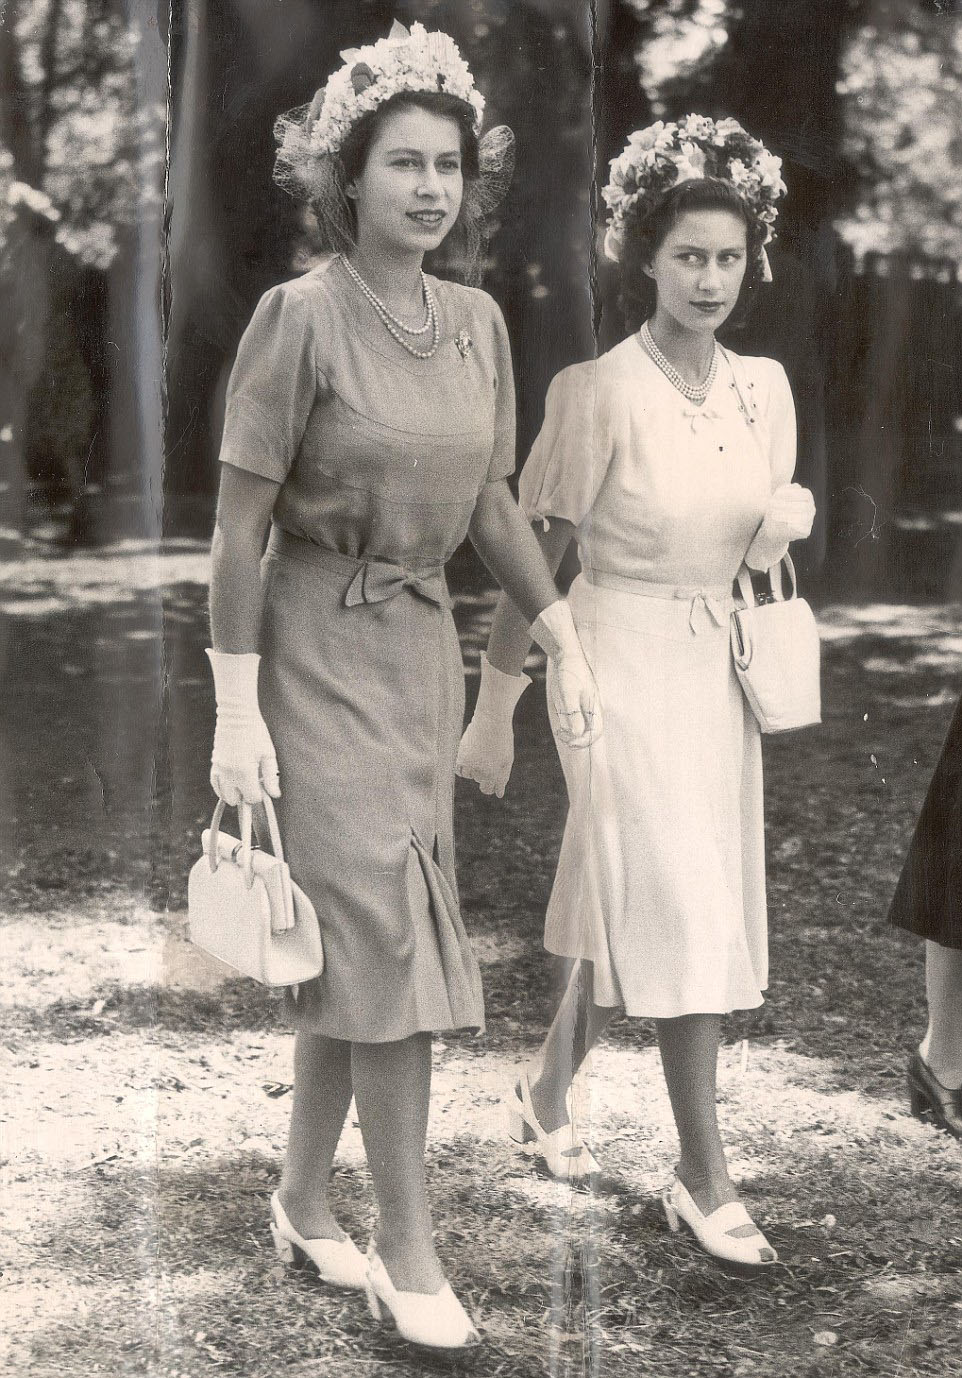 Side By With Sister Princess Margaret R And Dressed Almost Identically The 21 Year Old Elizabeth Ii L Is Already Setting Trends In Her